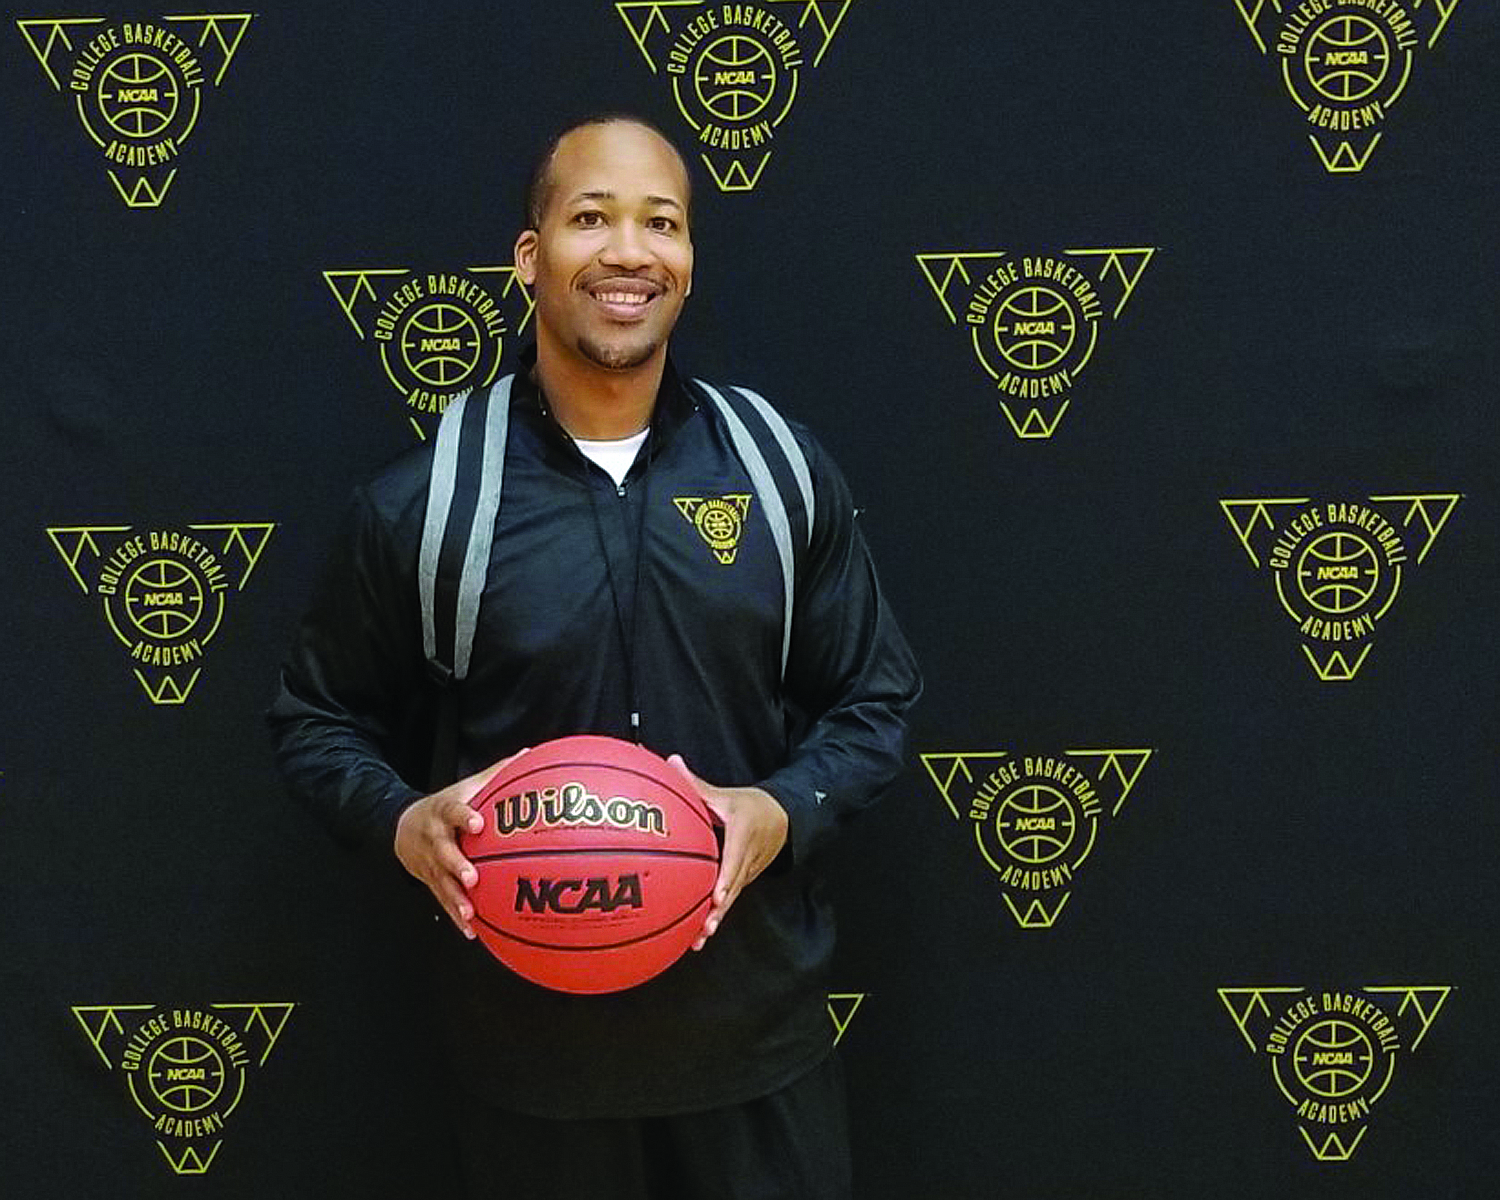 West Harrison Coach Selected to Lead Academy